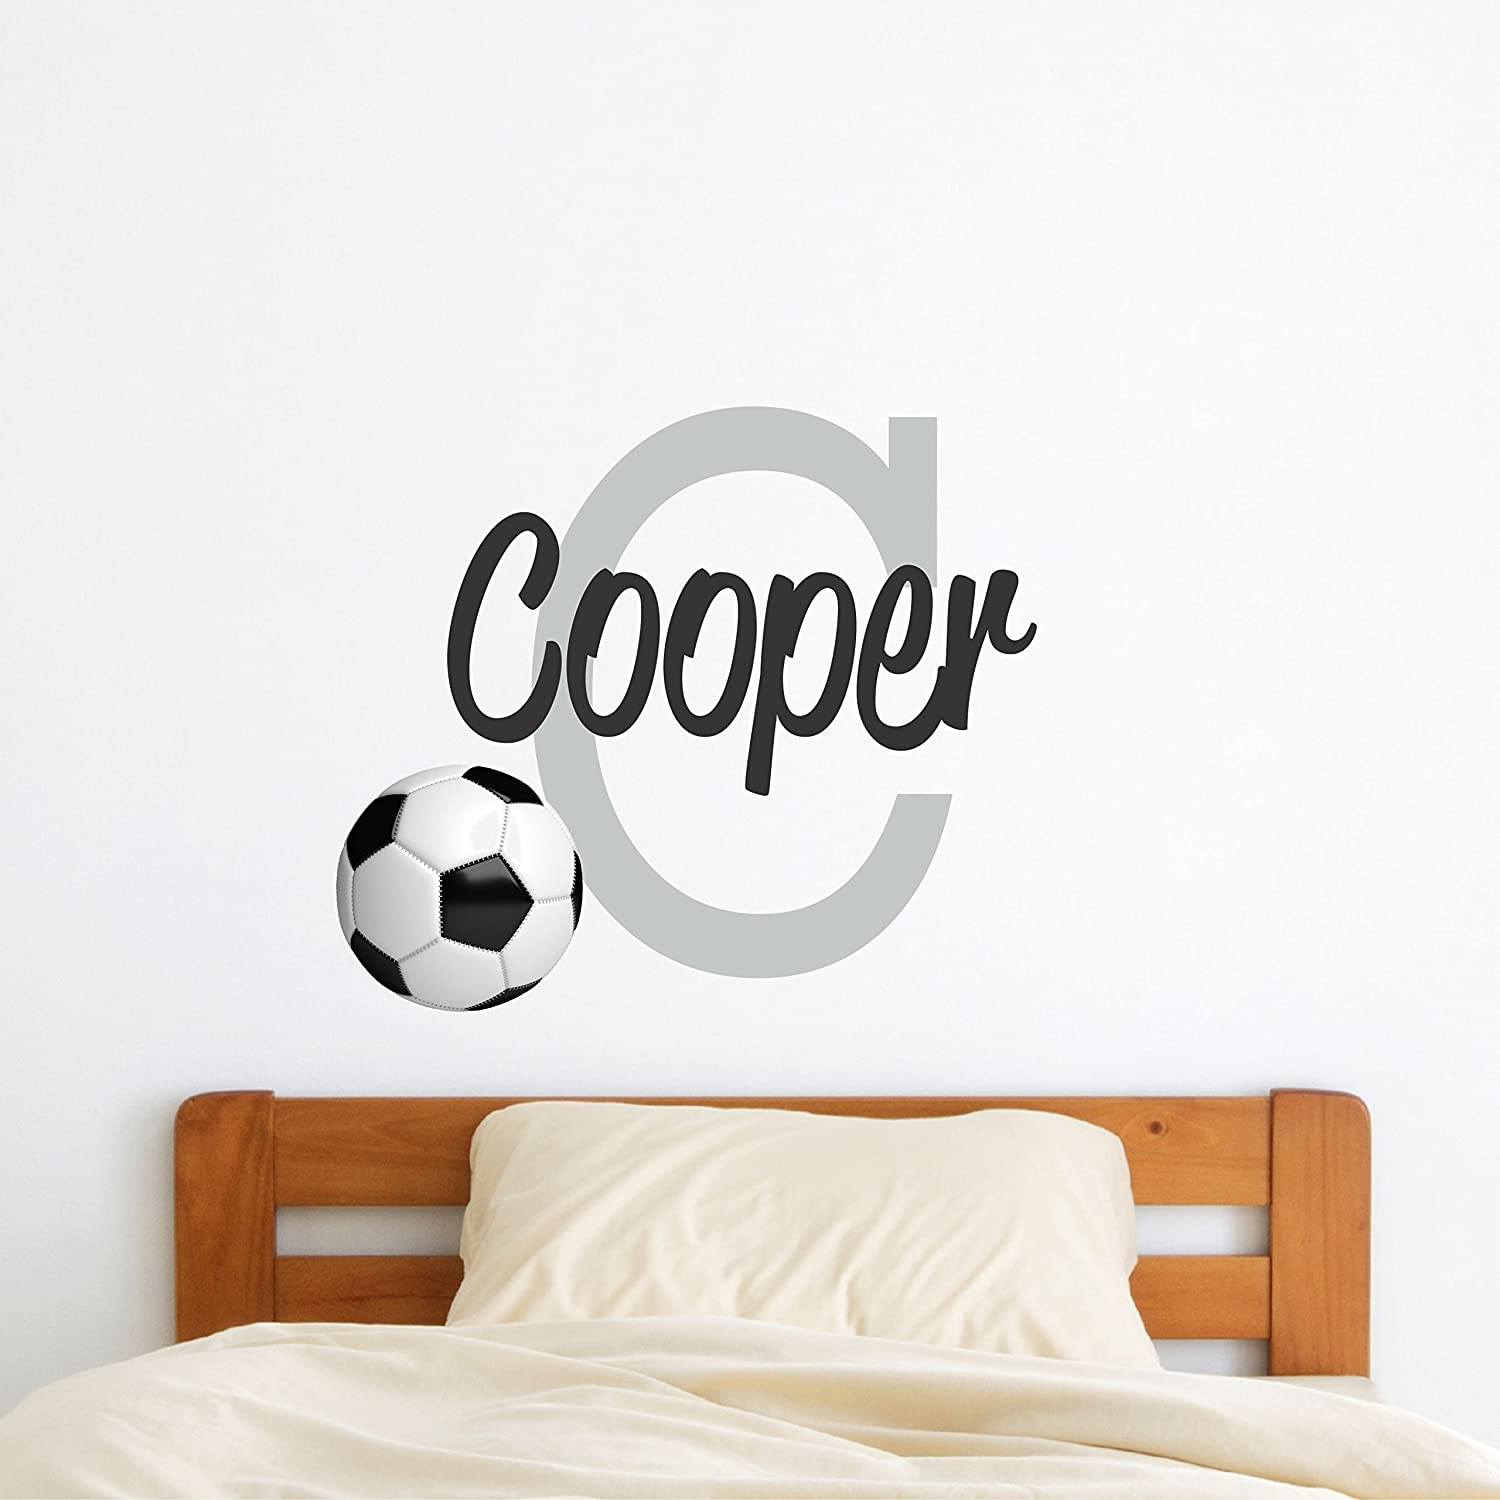 Custom Name Sports Wall Decal - Boys Girls Personalized Name Soccer Sports Wall Sticker - Custom Name Sign - Custom Name Stencil Monogram - Boys Girls Room Wall Decor …